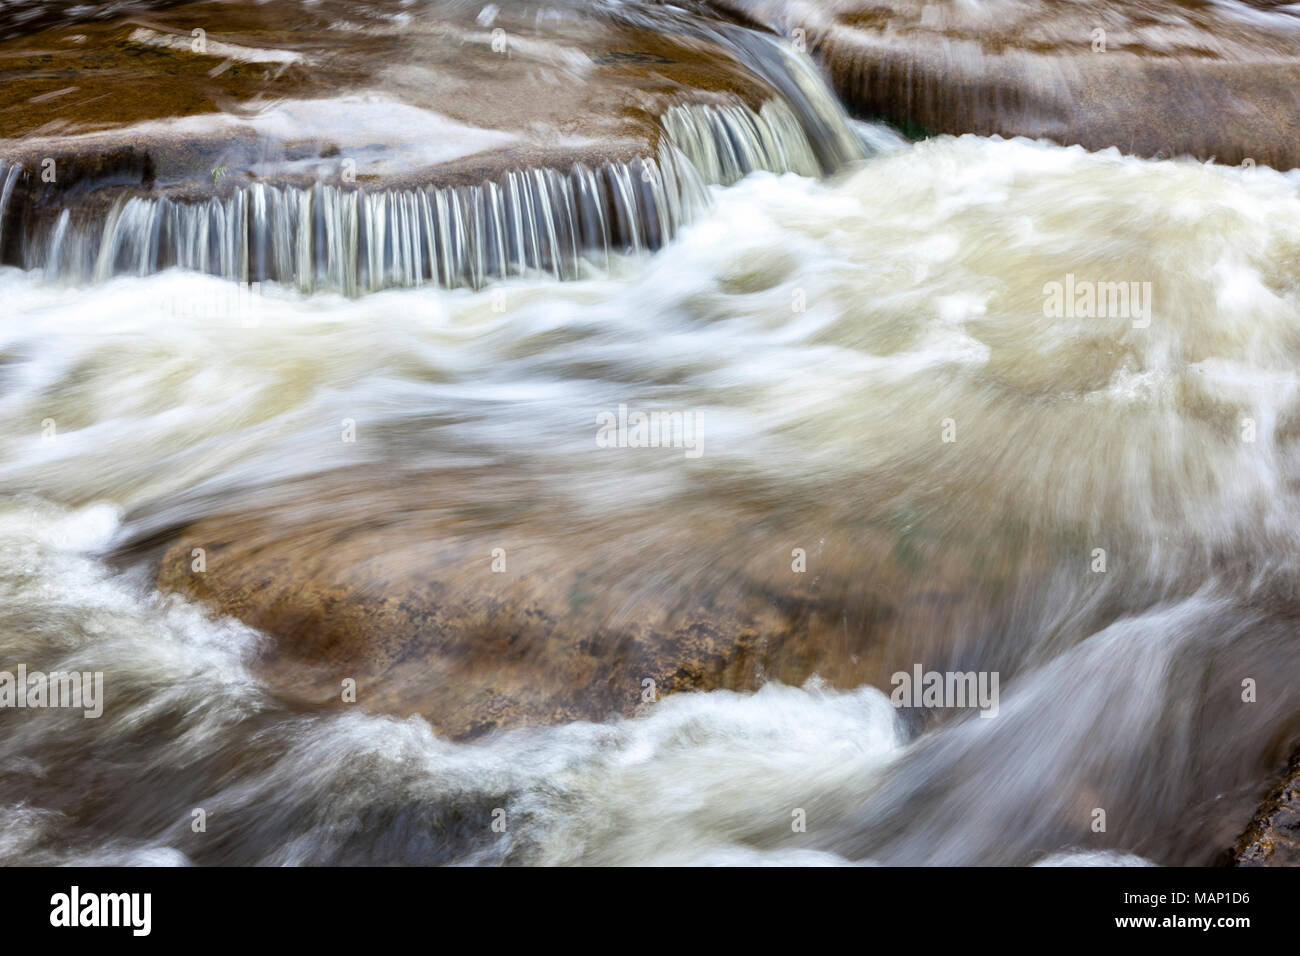 Closeup of rushing water over rocks in a creek. - Stock Image